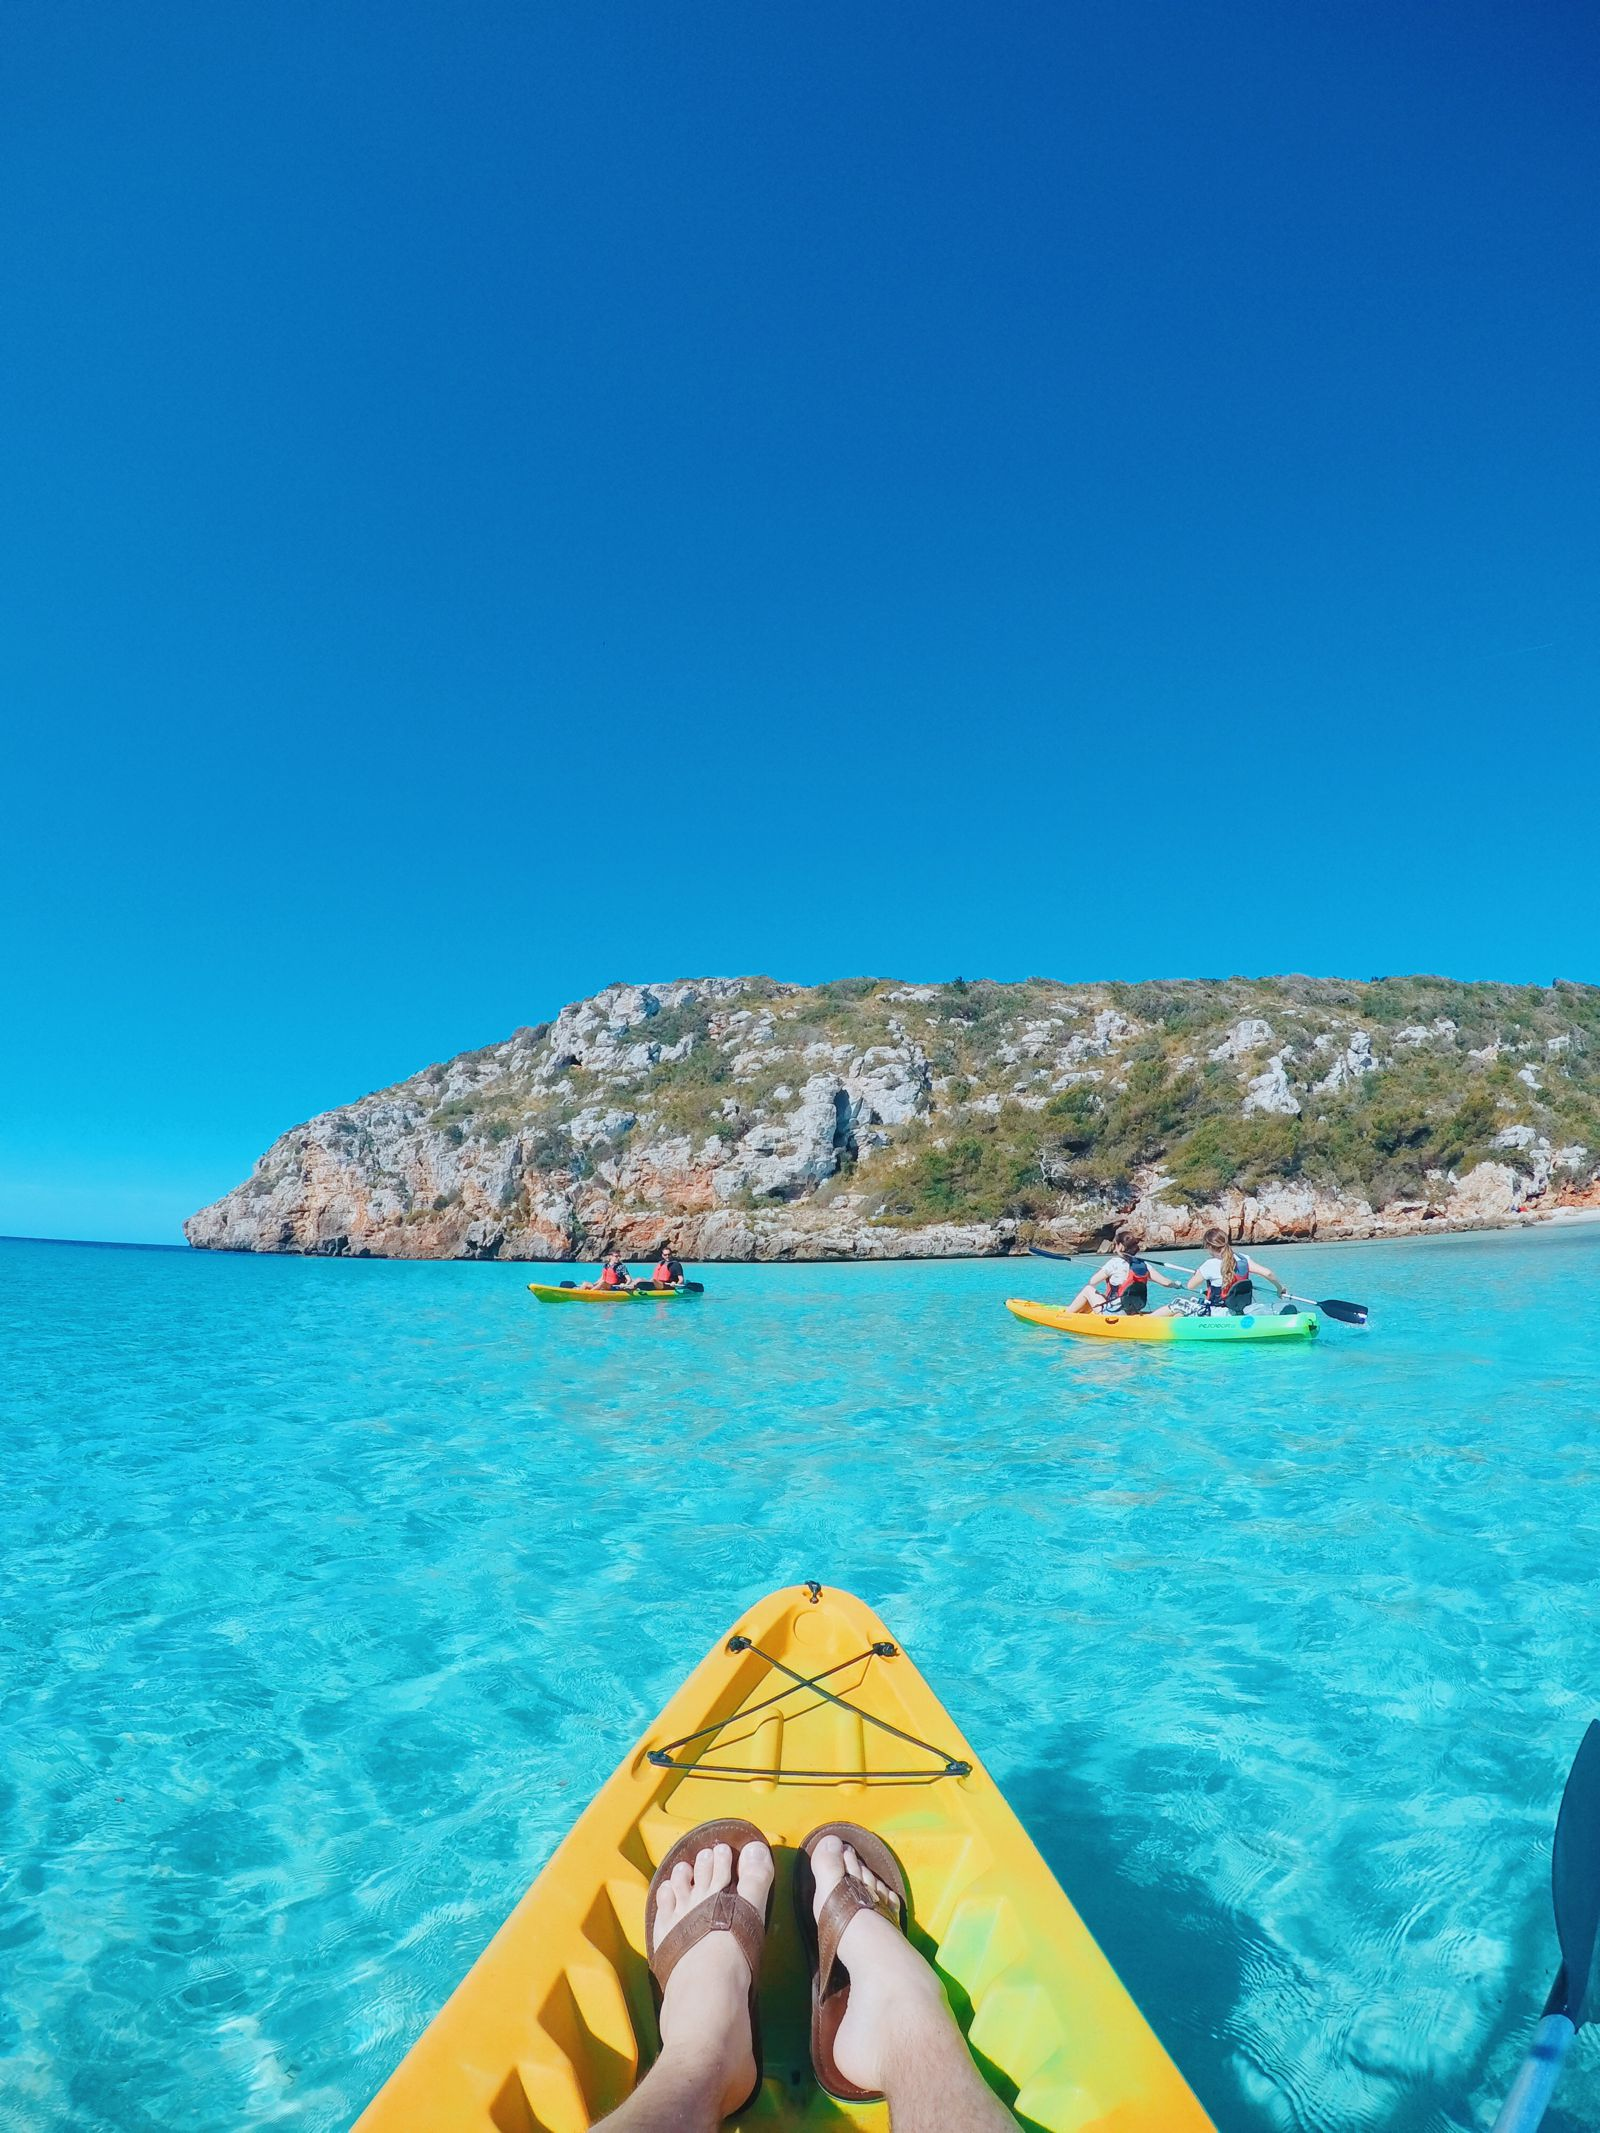 Ever Wondered What The Spanish Island Of Menorca Looks Like? Well Here It is... (2)